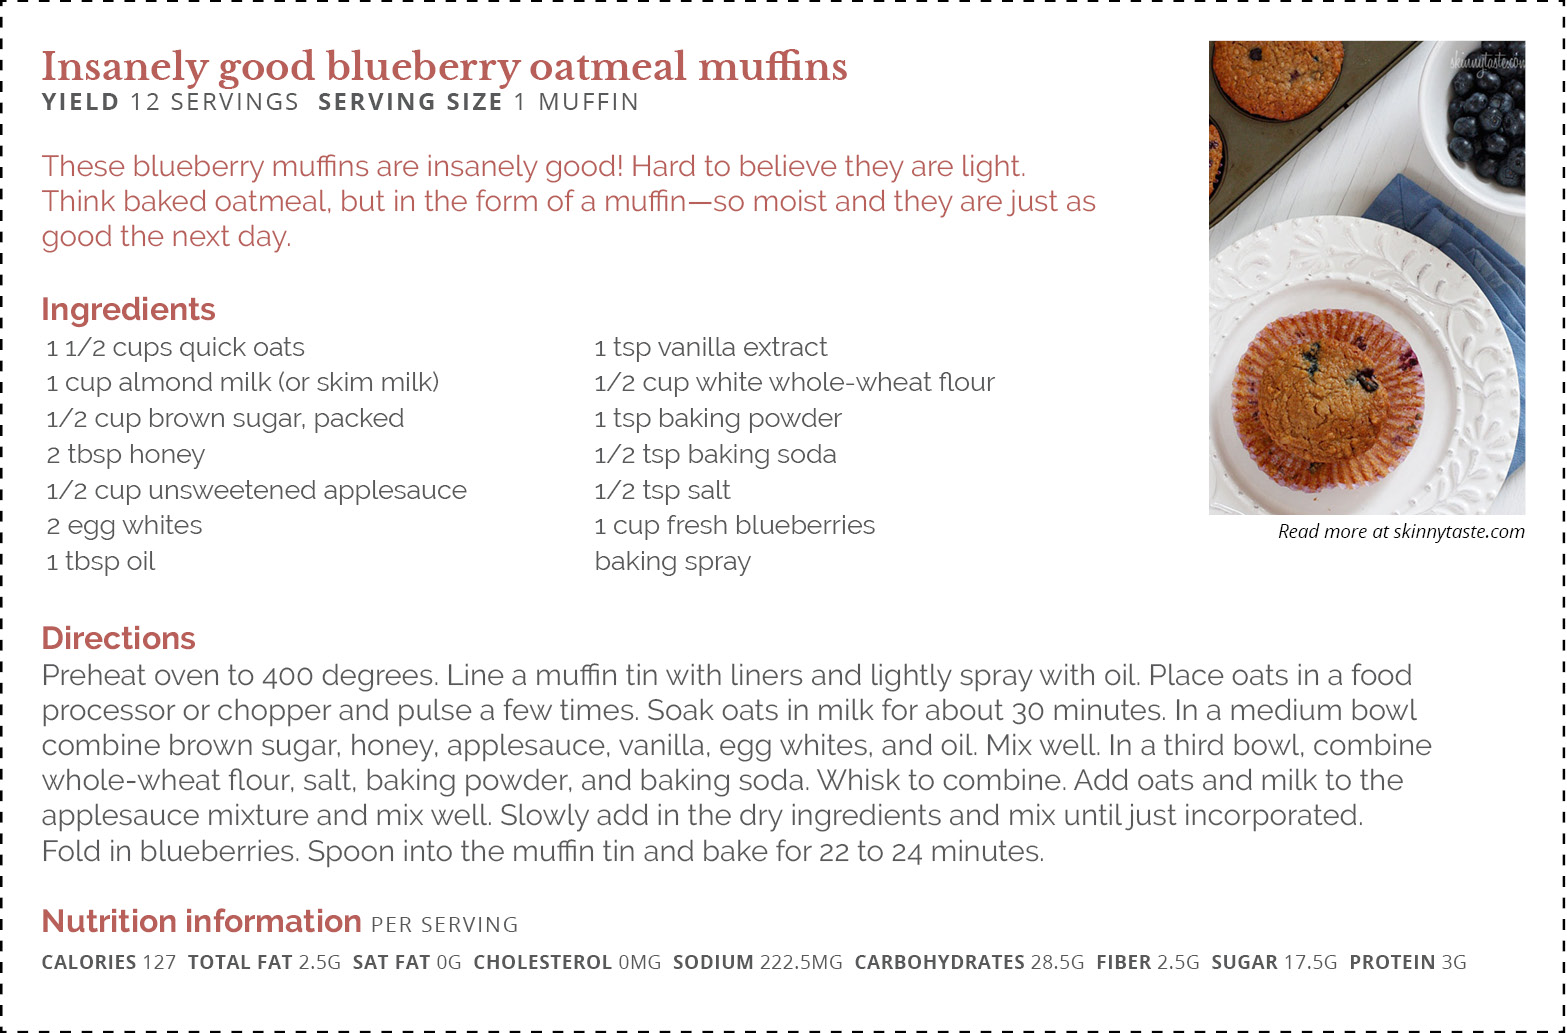 insanely-good-blueberry-oatmeal-muffins